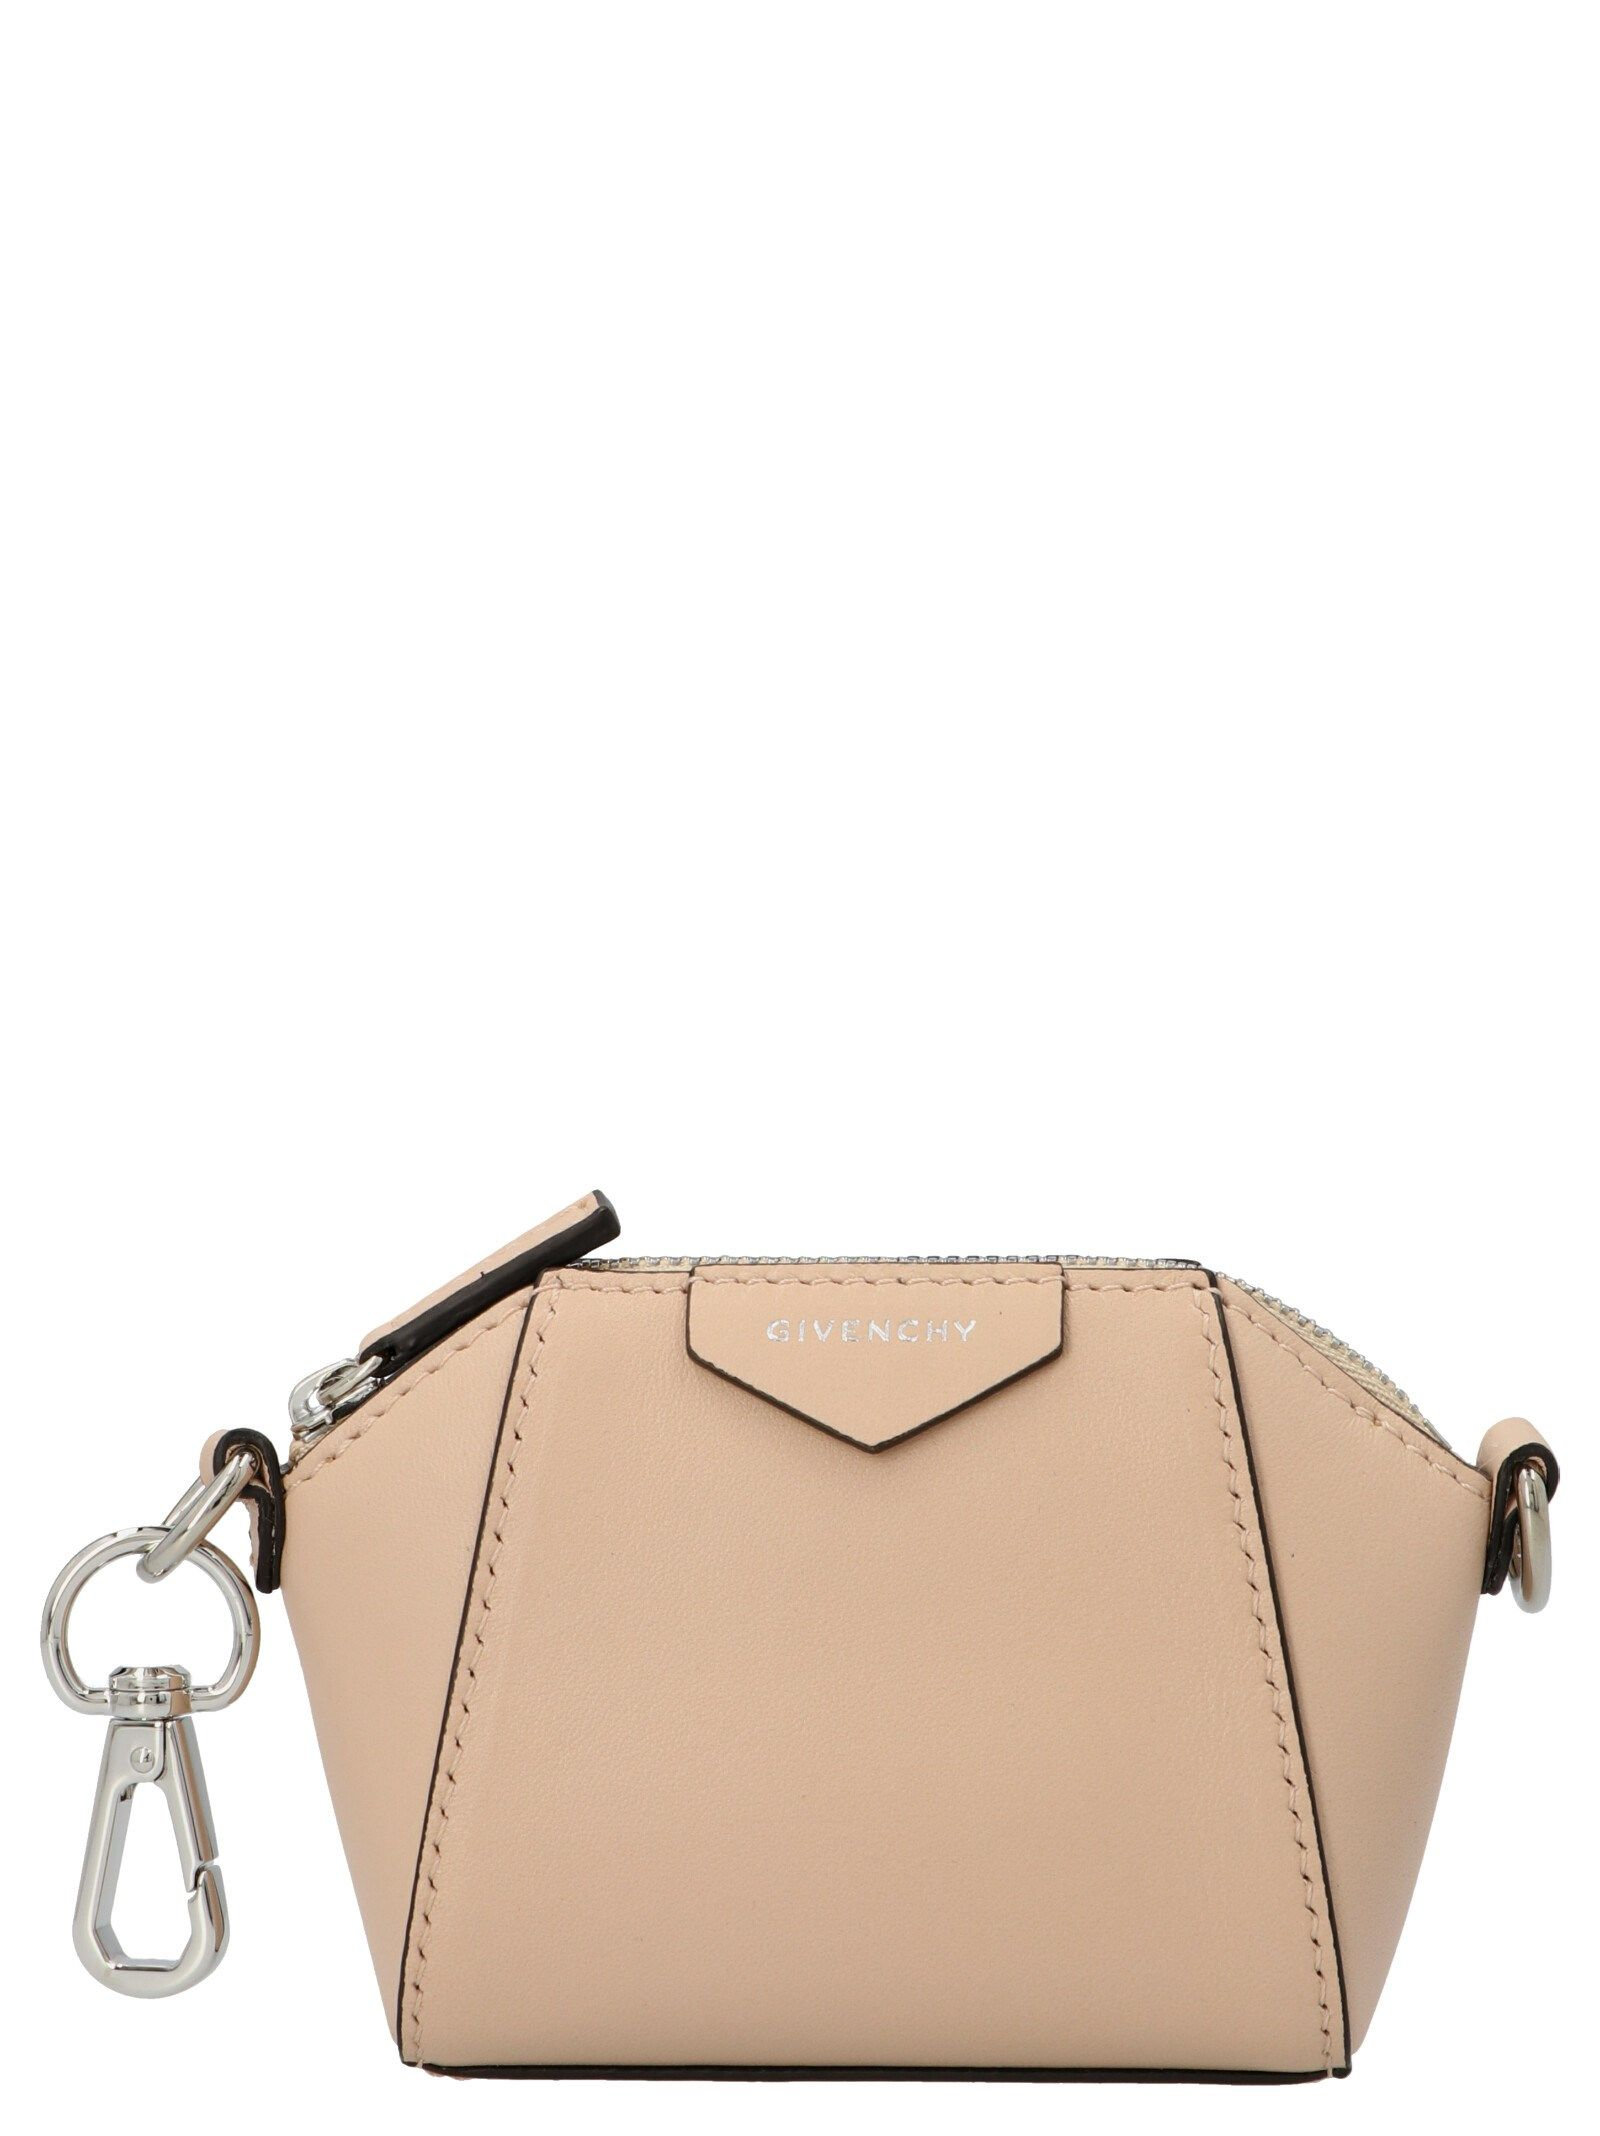 Givenchy GIVENCHY WOMEN'S PINK OTHER MATERIALS SHOULDER BAG